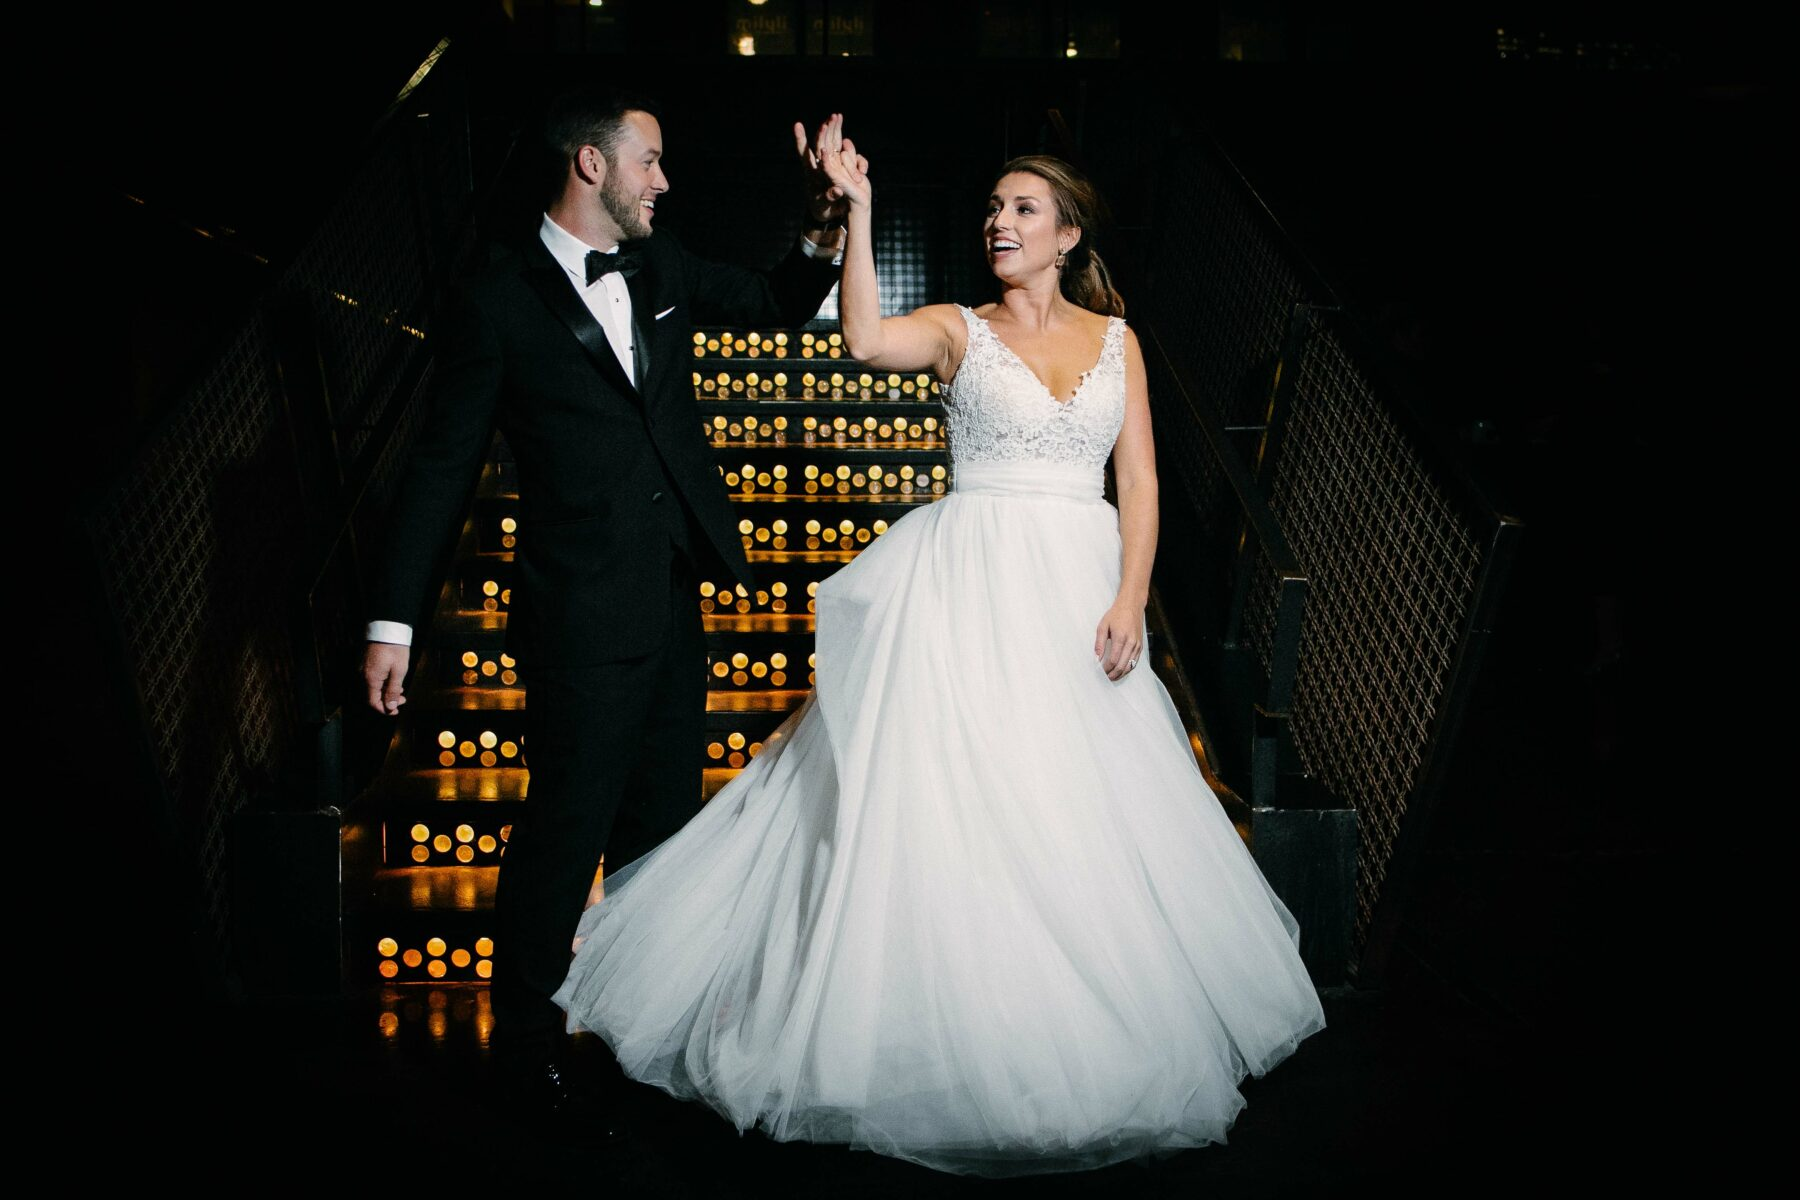 Morgan MFG Chicago Wedding